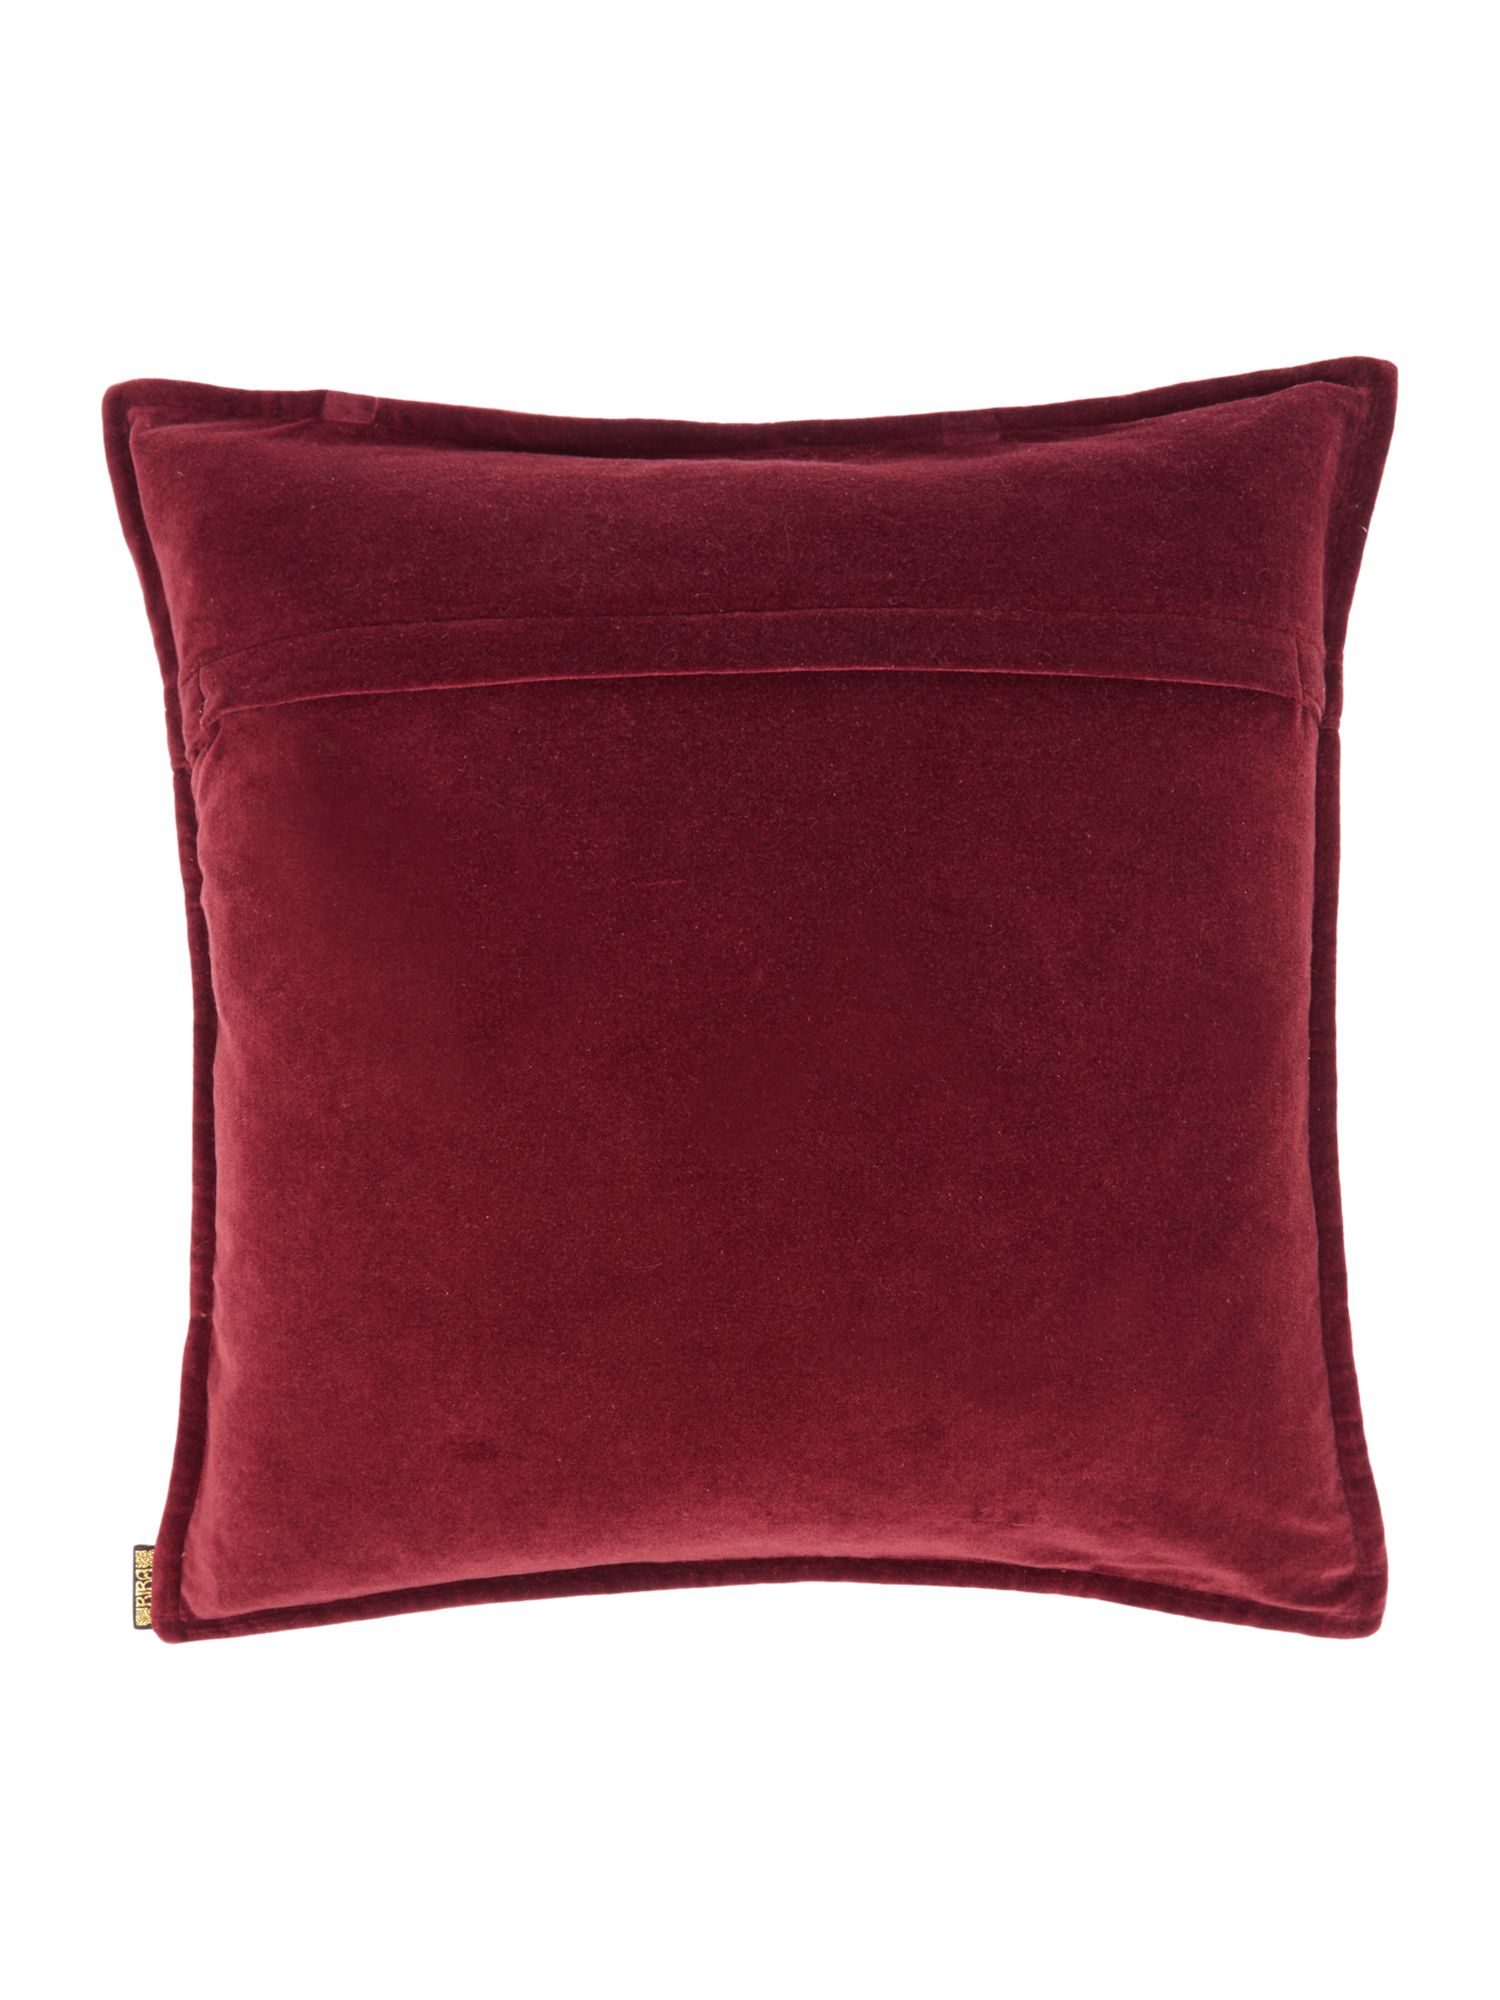 Purple velvet gold studded cushion